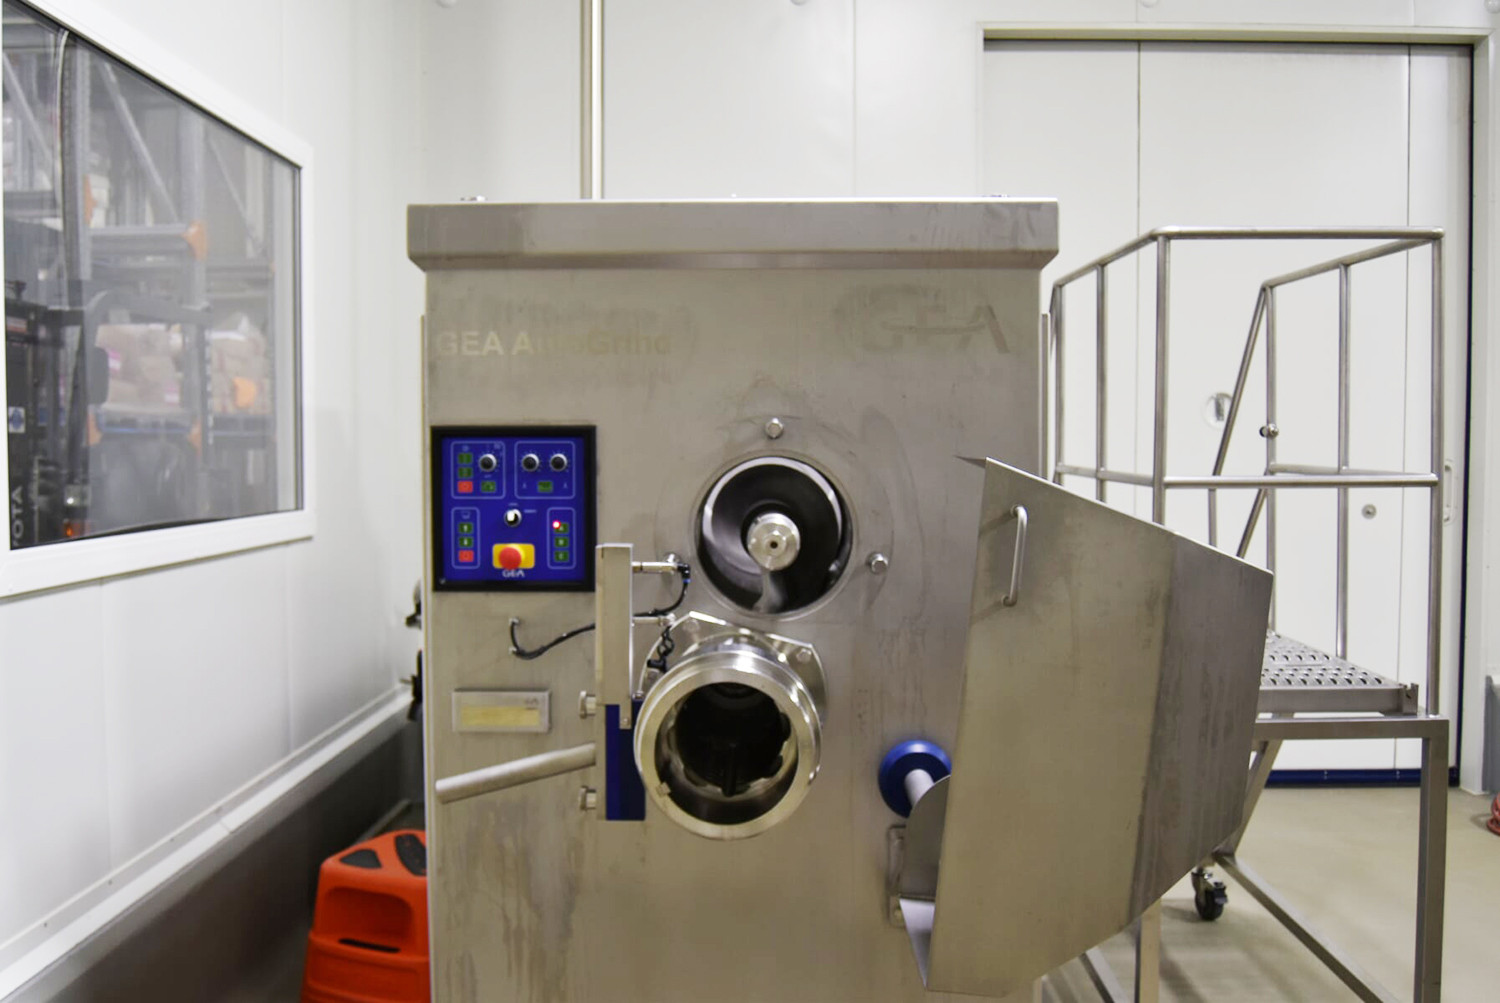 Proform Foods high moisture texturised protein machinery at Mount Kuring-gai, Food Manufacturing NSW facility